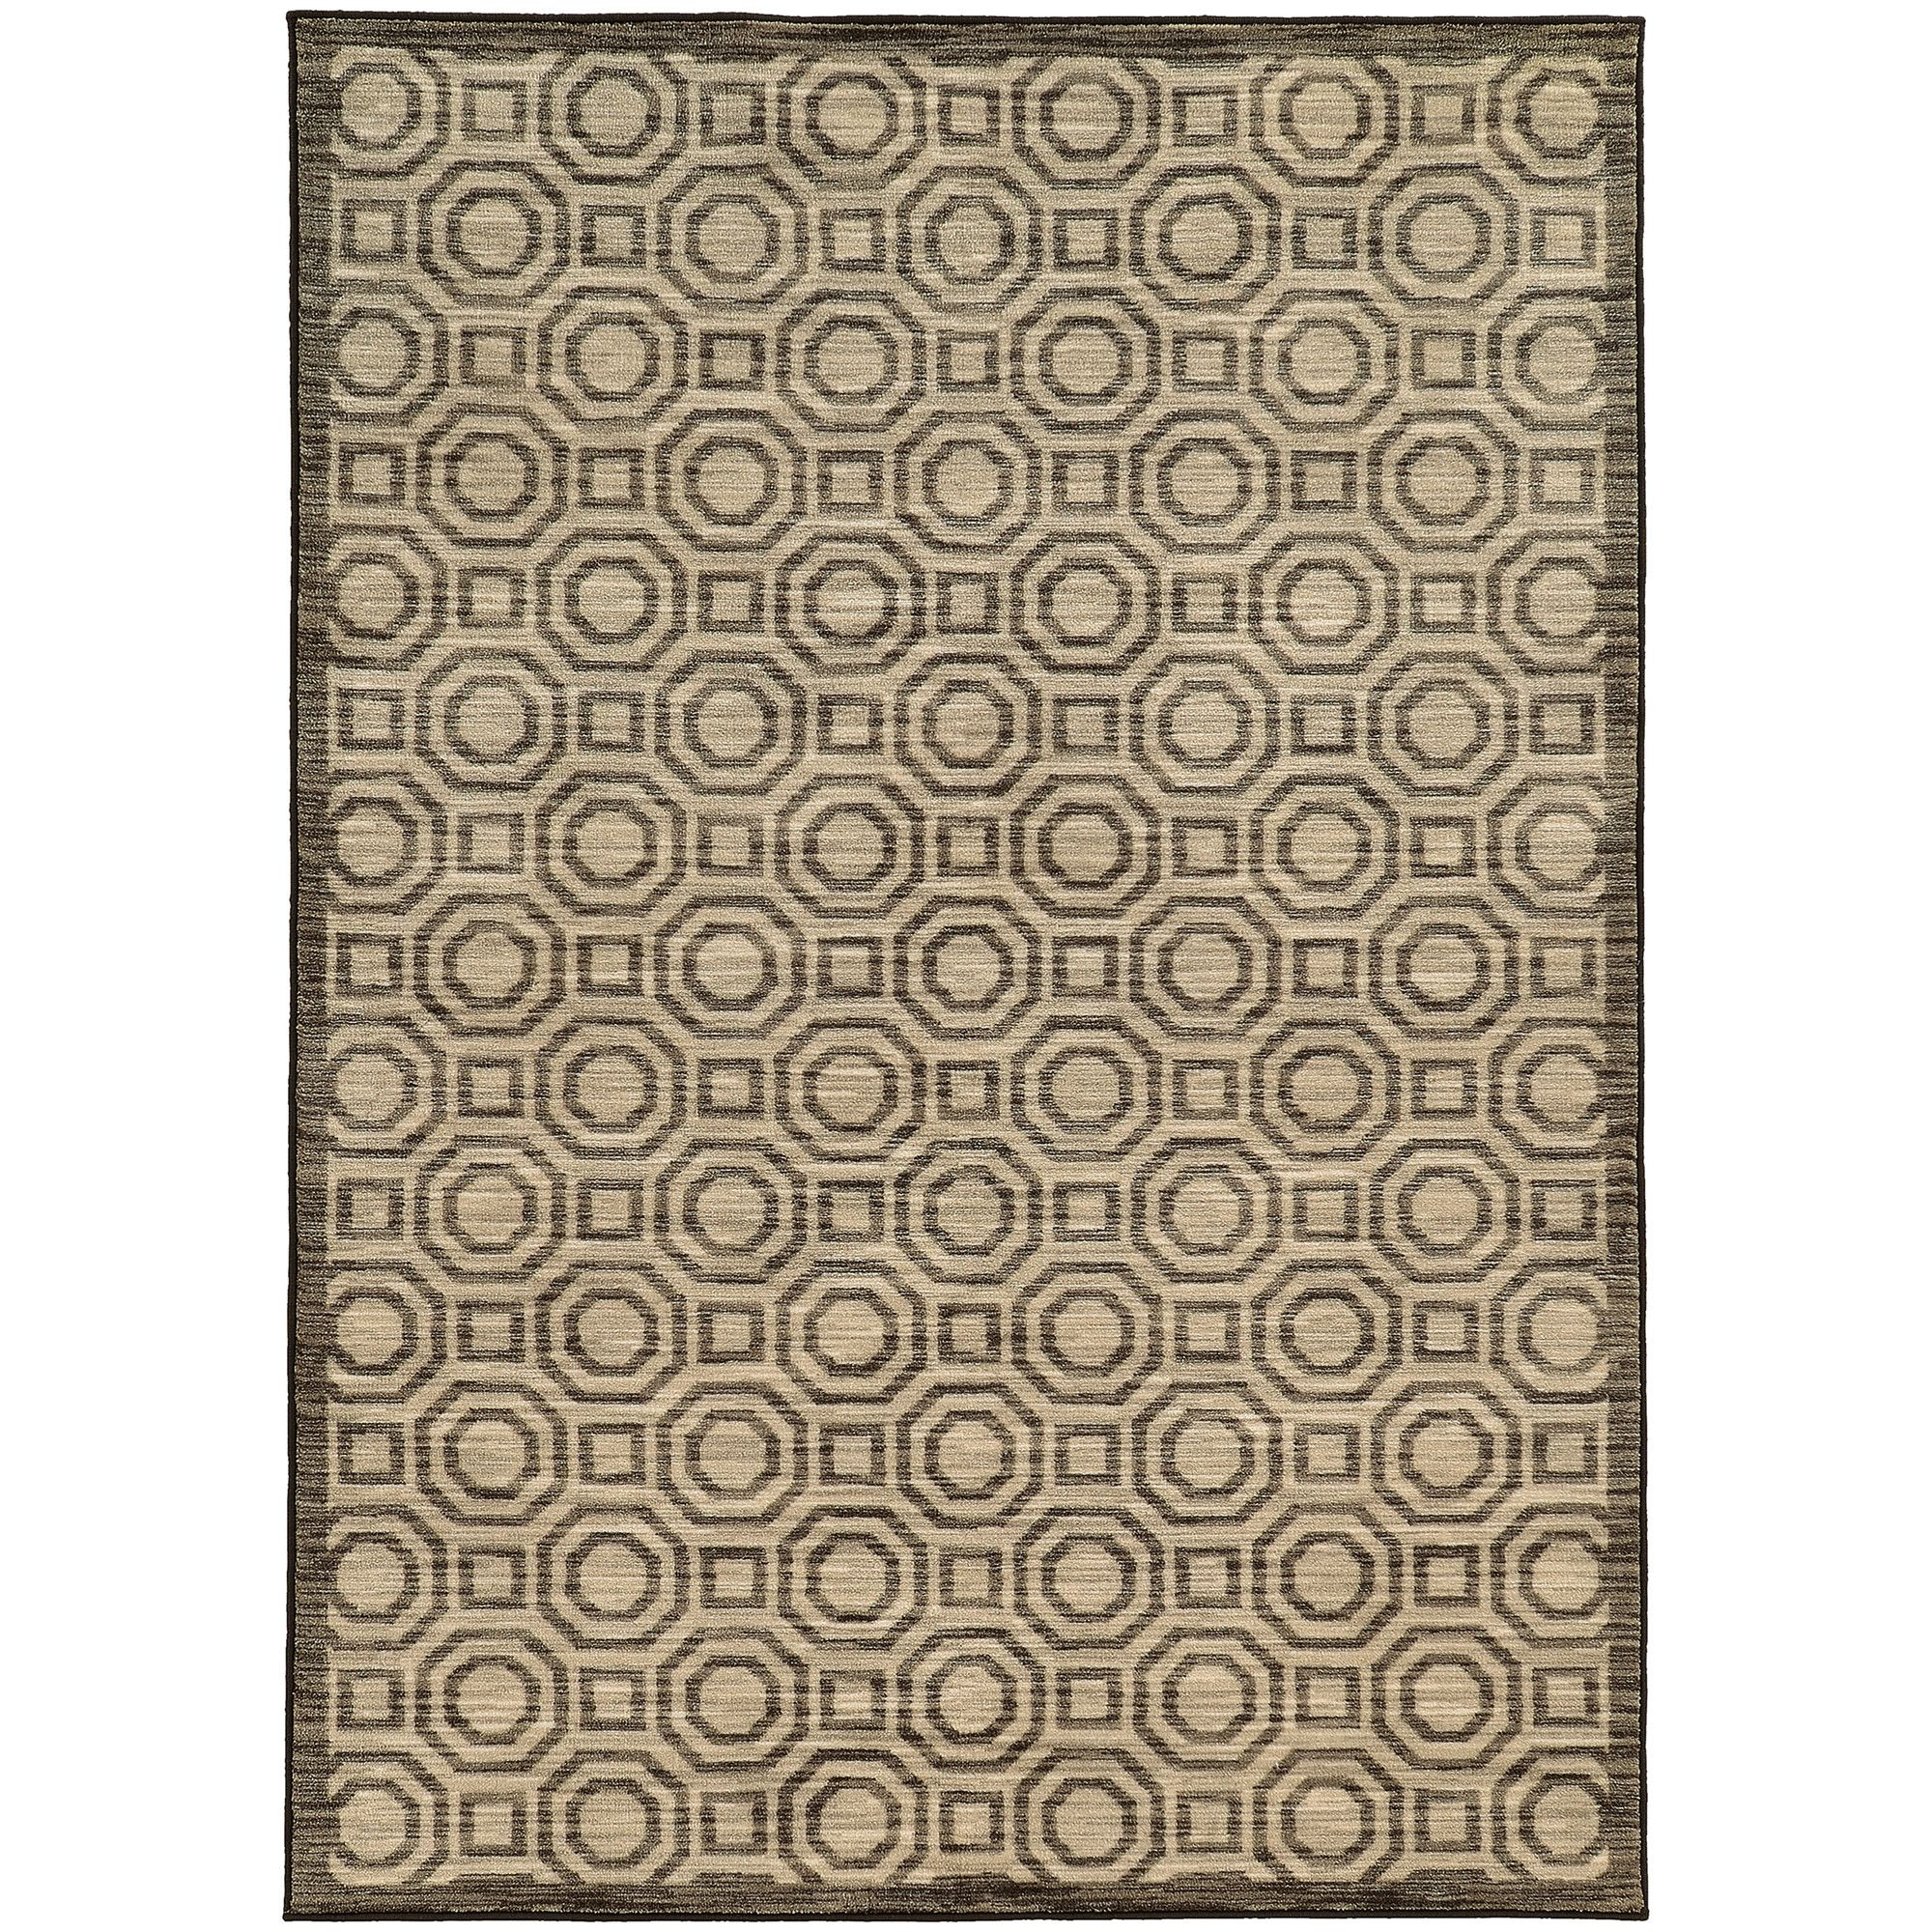 Reisman Geometric Charcoal/Grey Area Rug